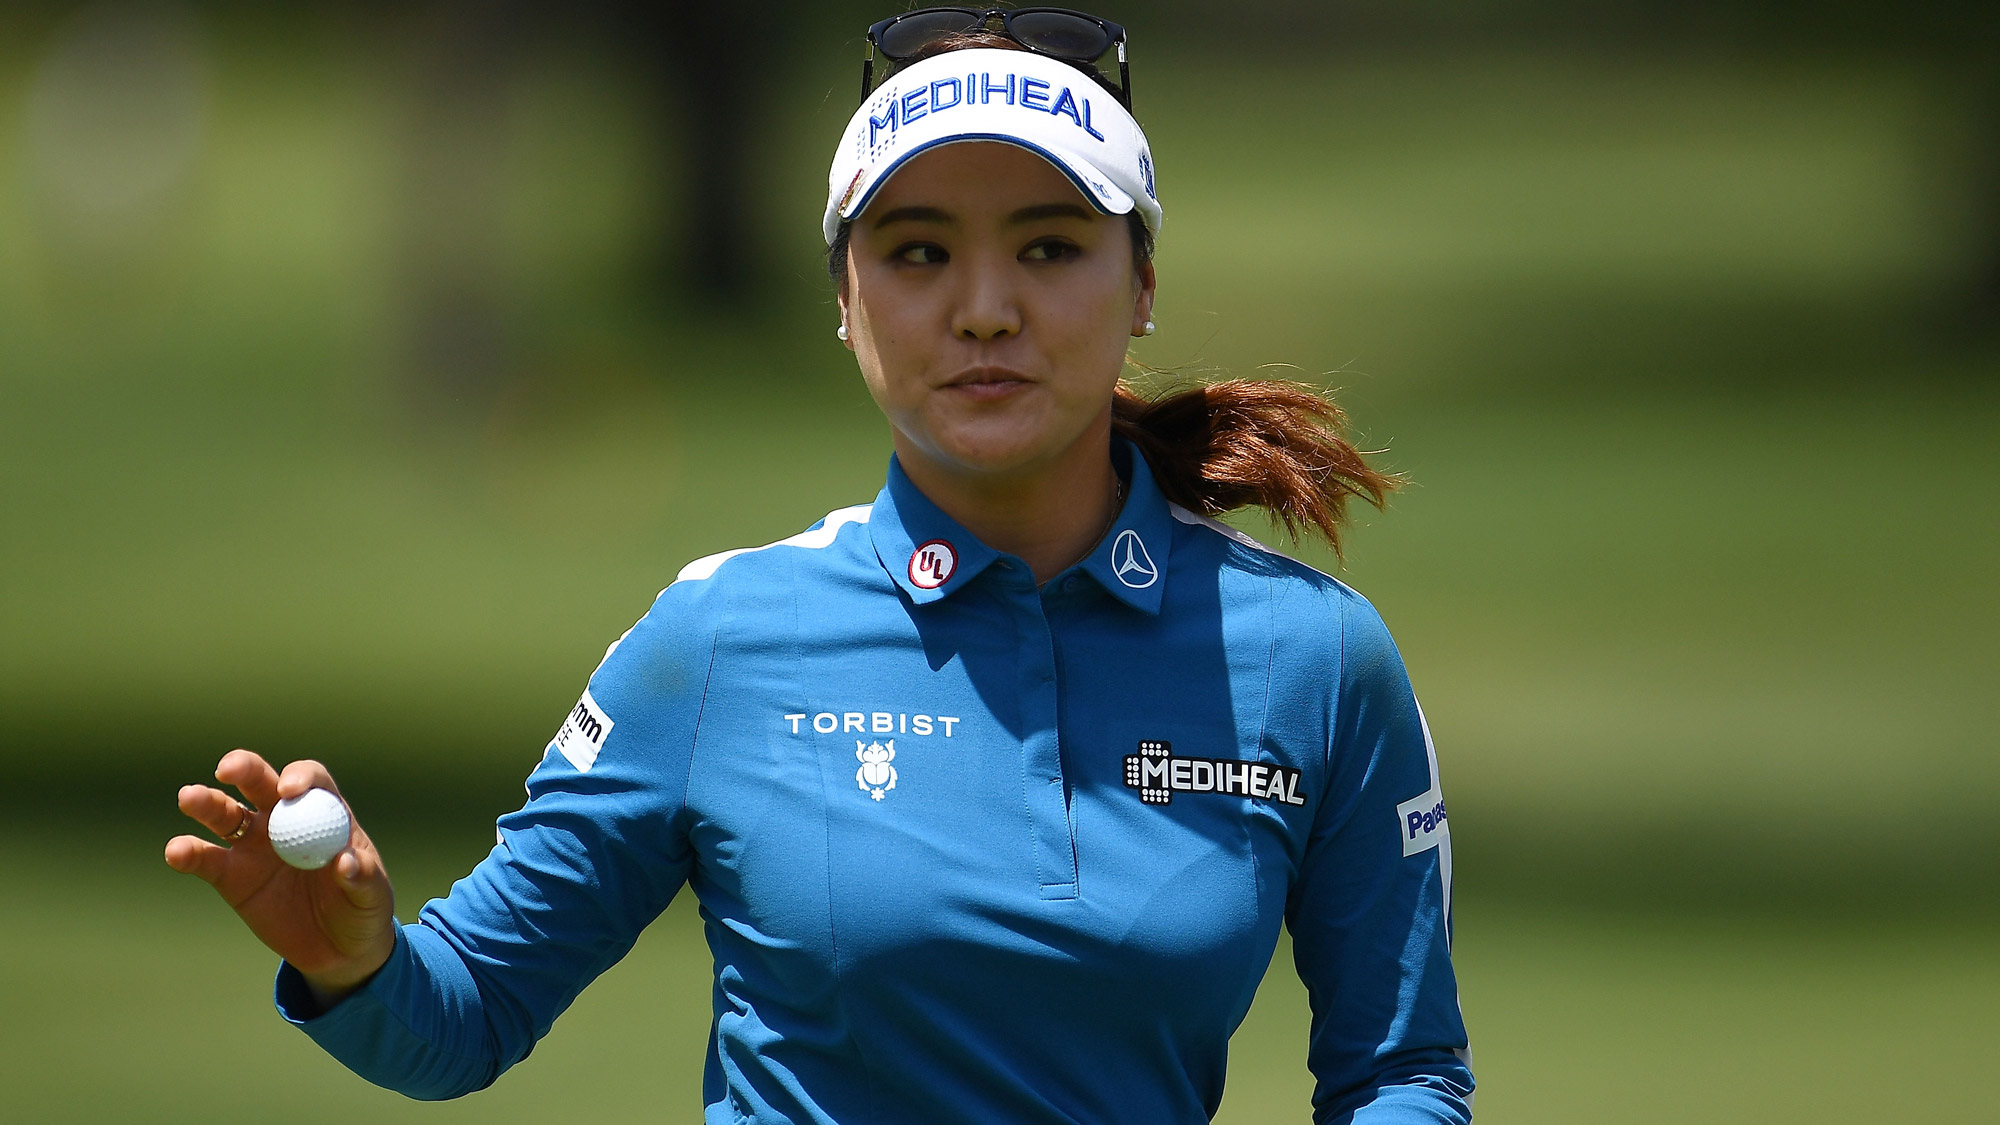 So Yeon Ryu Posts a 64 in Round One in Grand Rapids